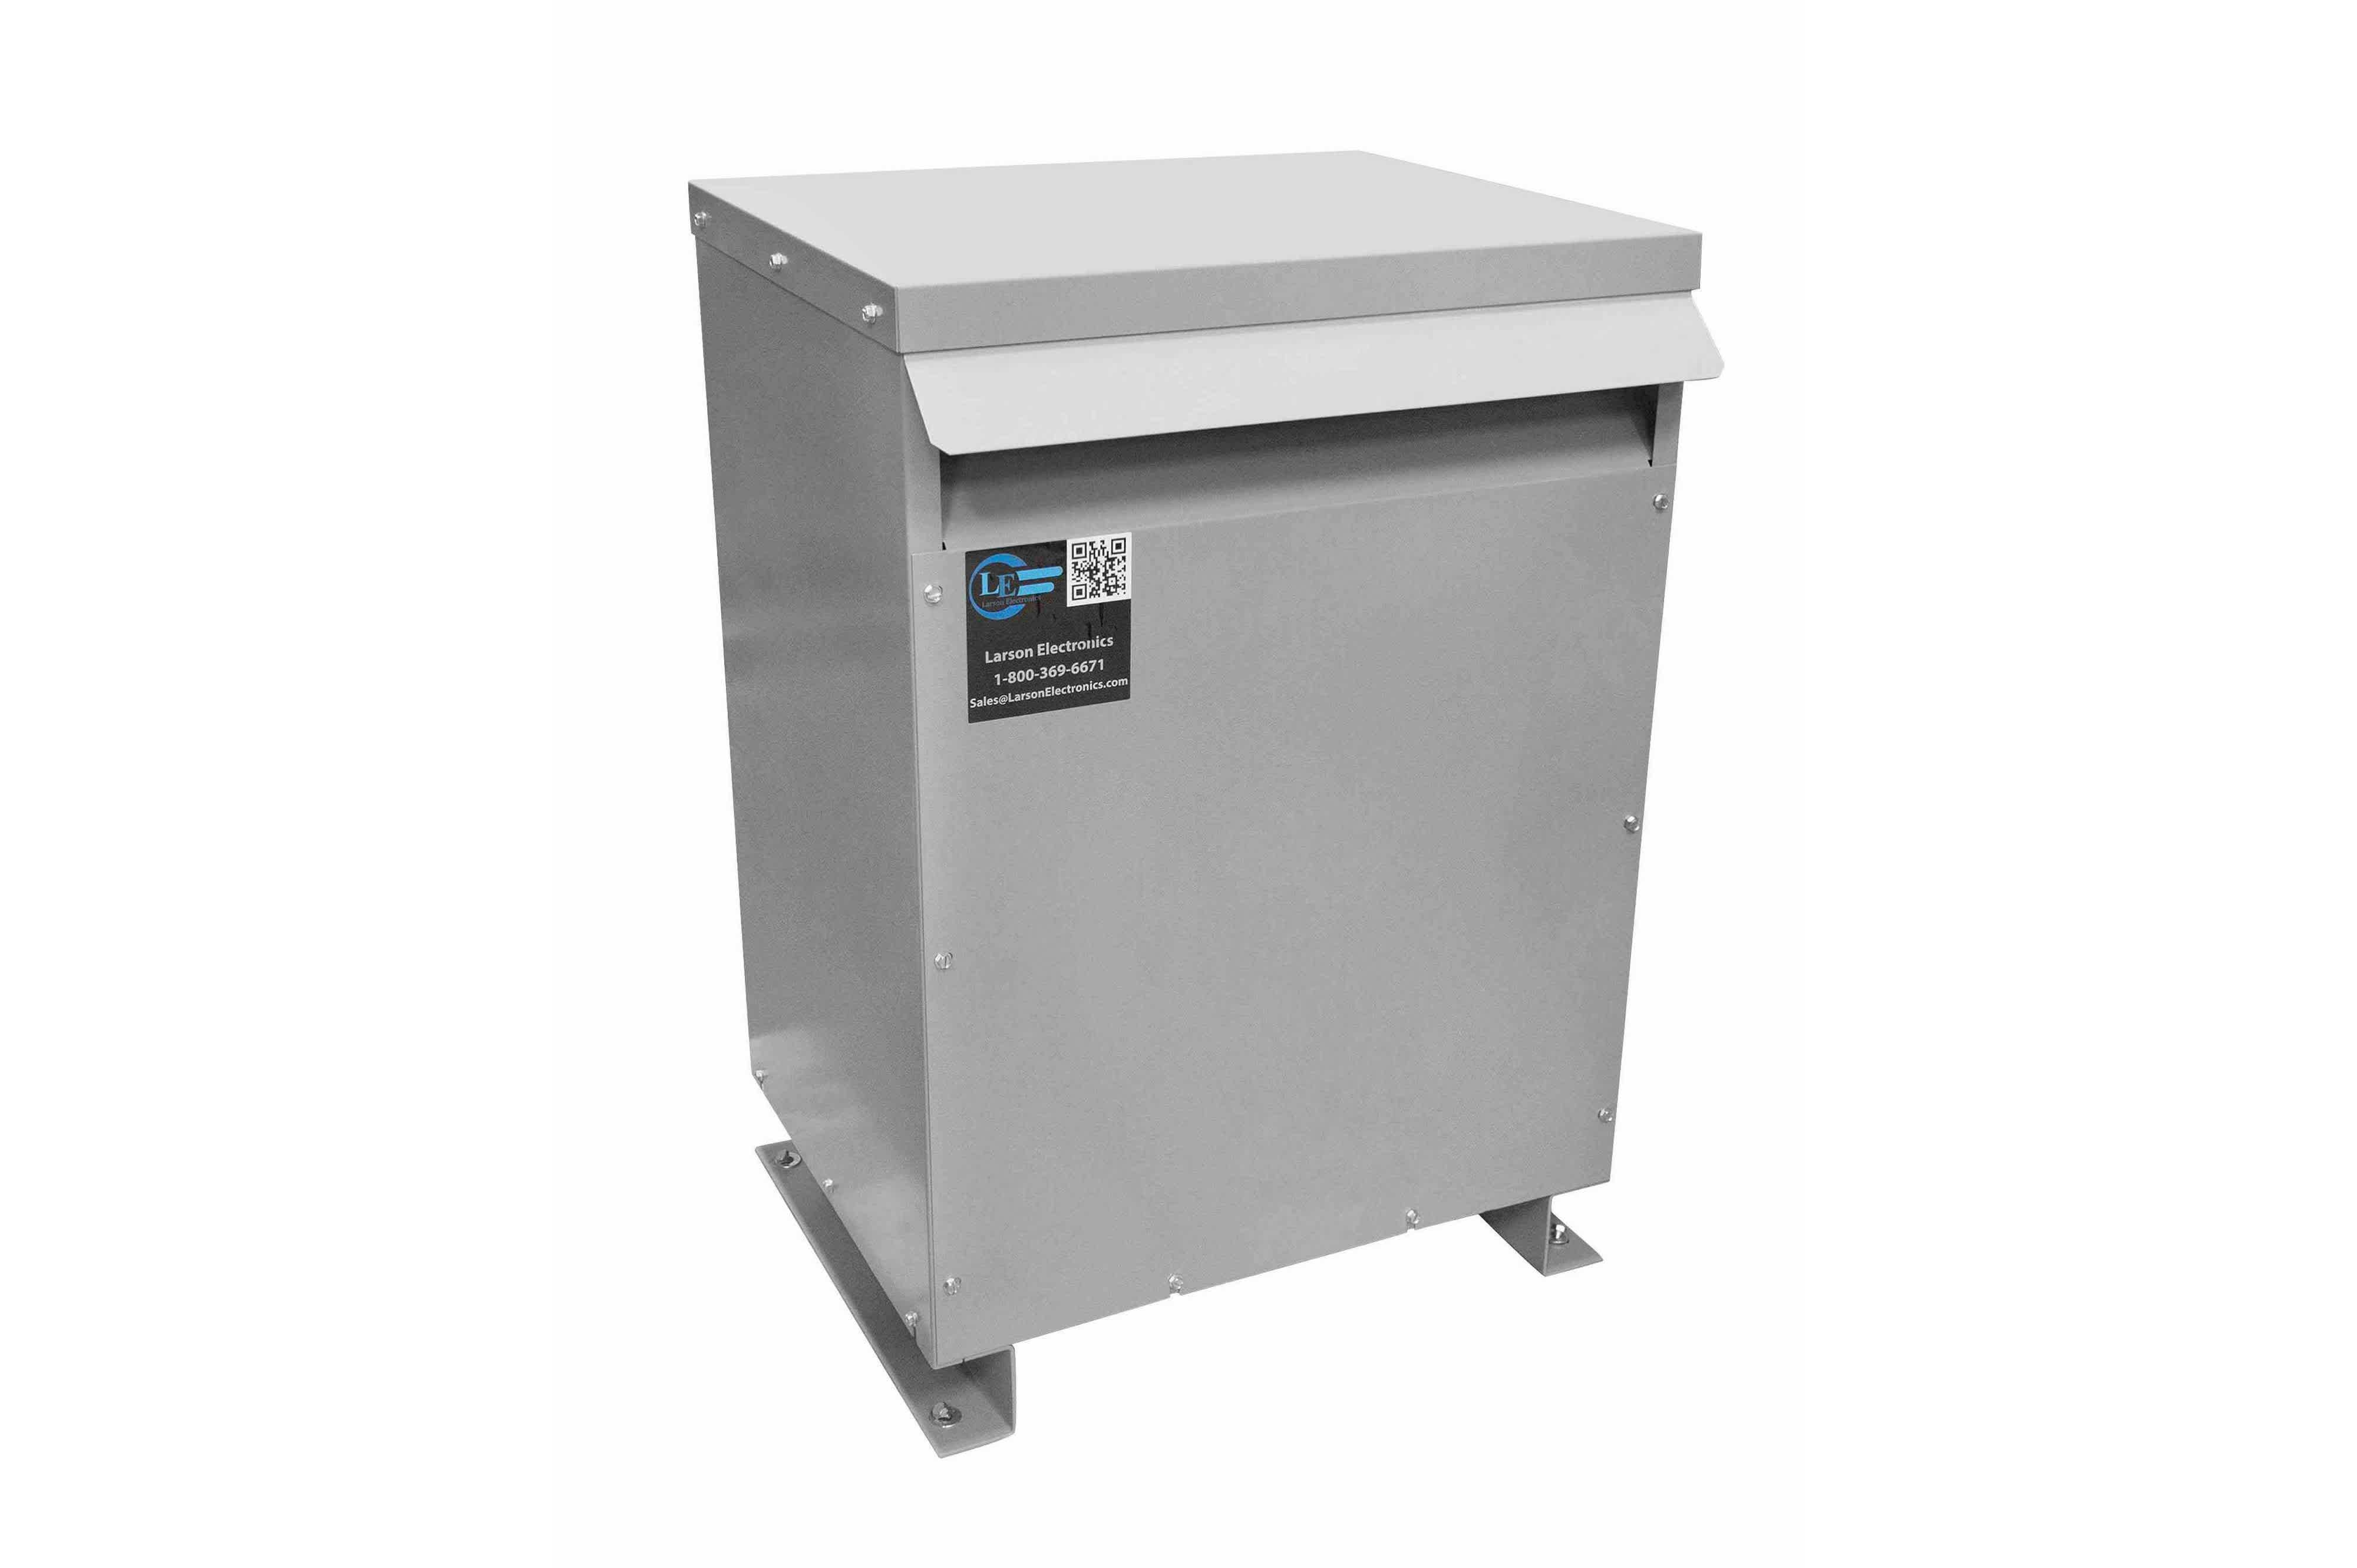 27 kVA 3PH Isolation Transformer, 480V Wye Primary, 208V Delta Secondary, N3R, Ventilated, 60 Hz